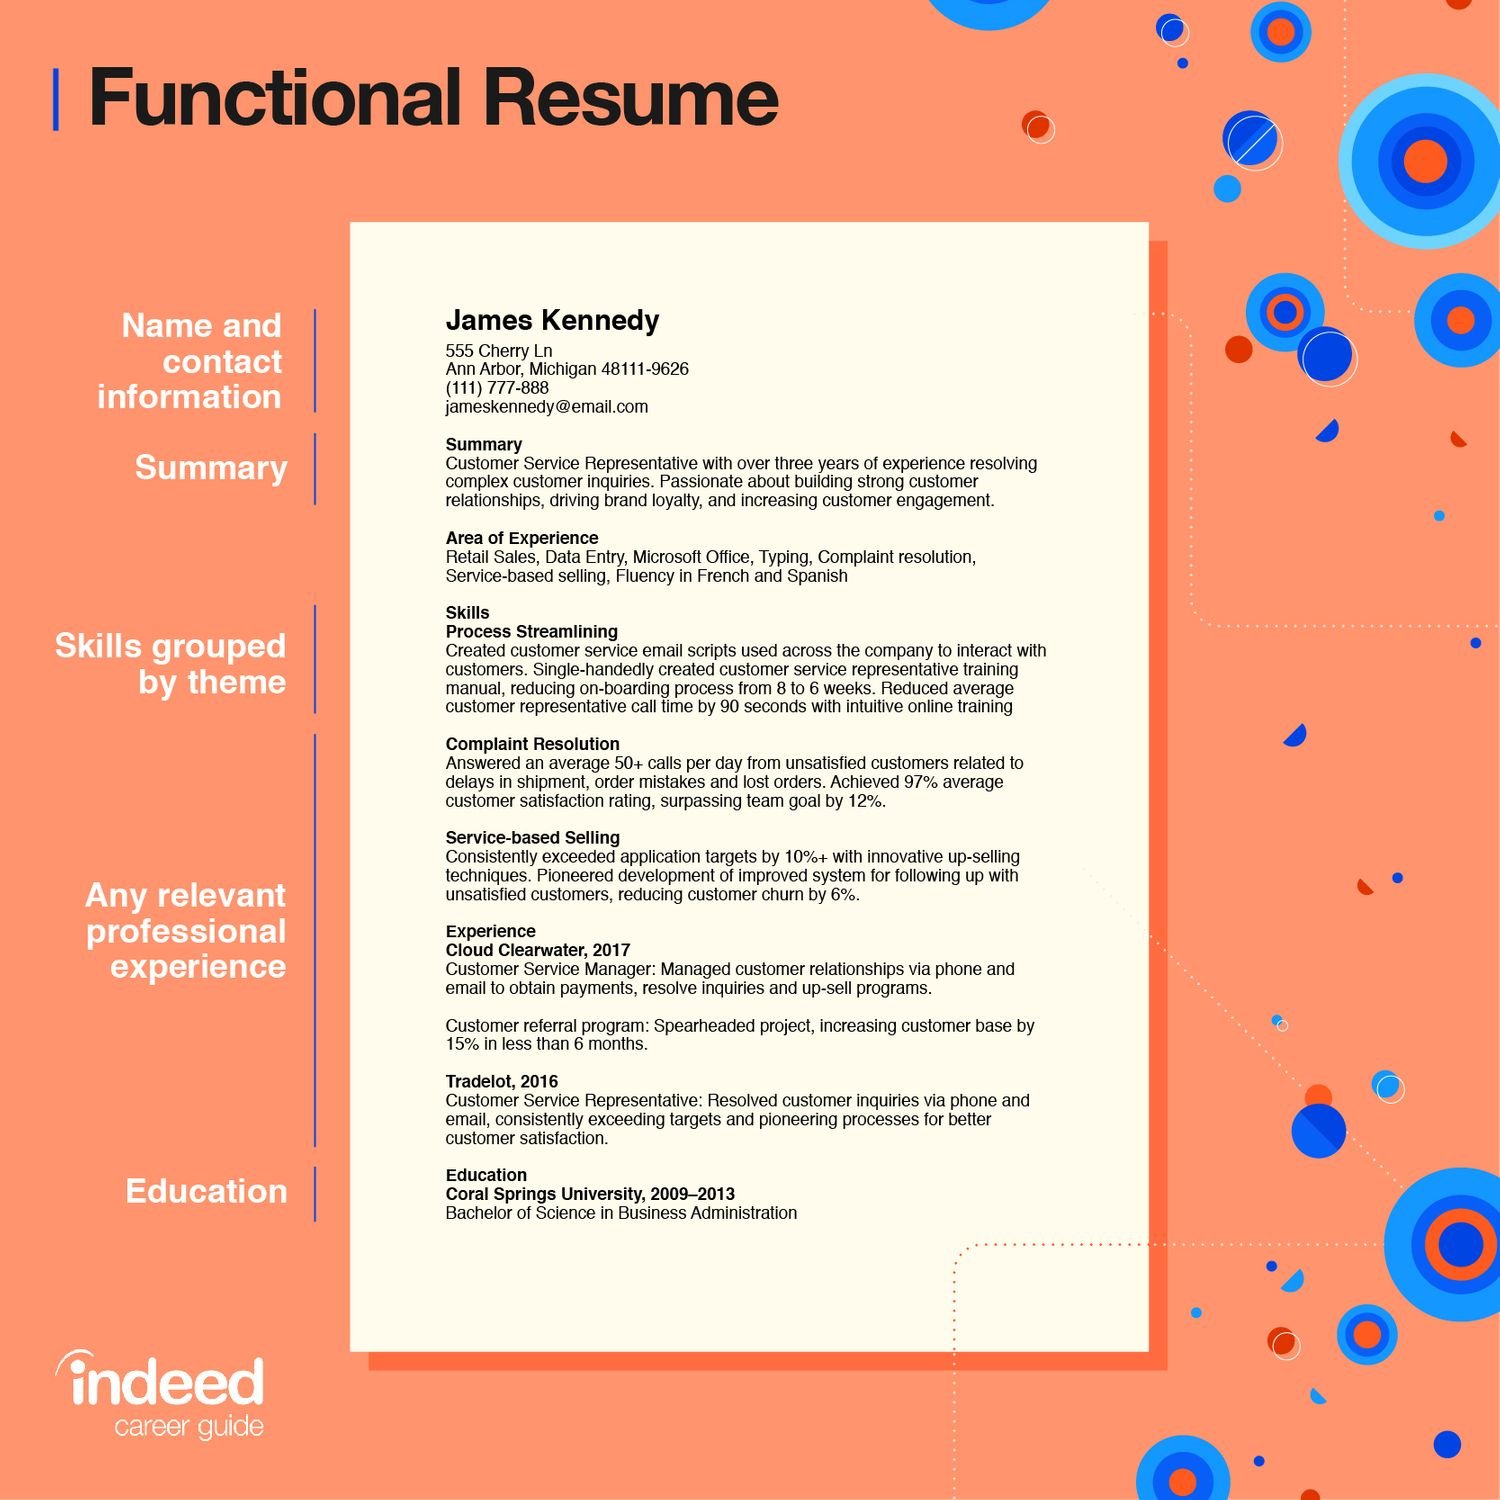 functional resume definition tips and examples indeed format resized writing canberra job Resume A Functional Resume Format